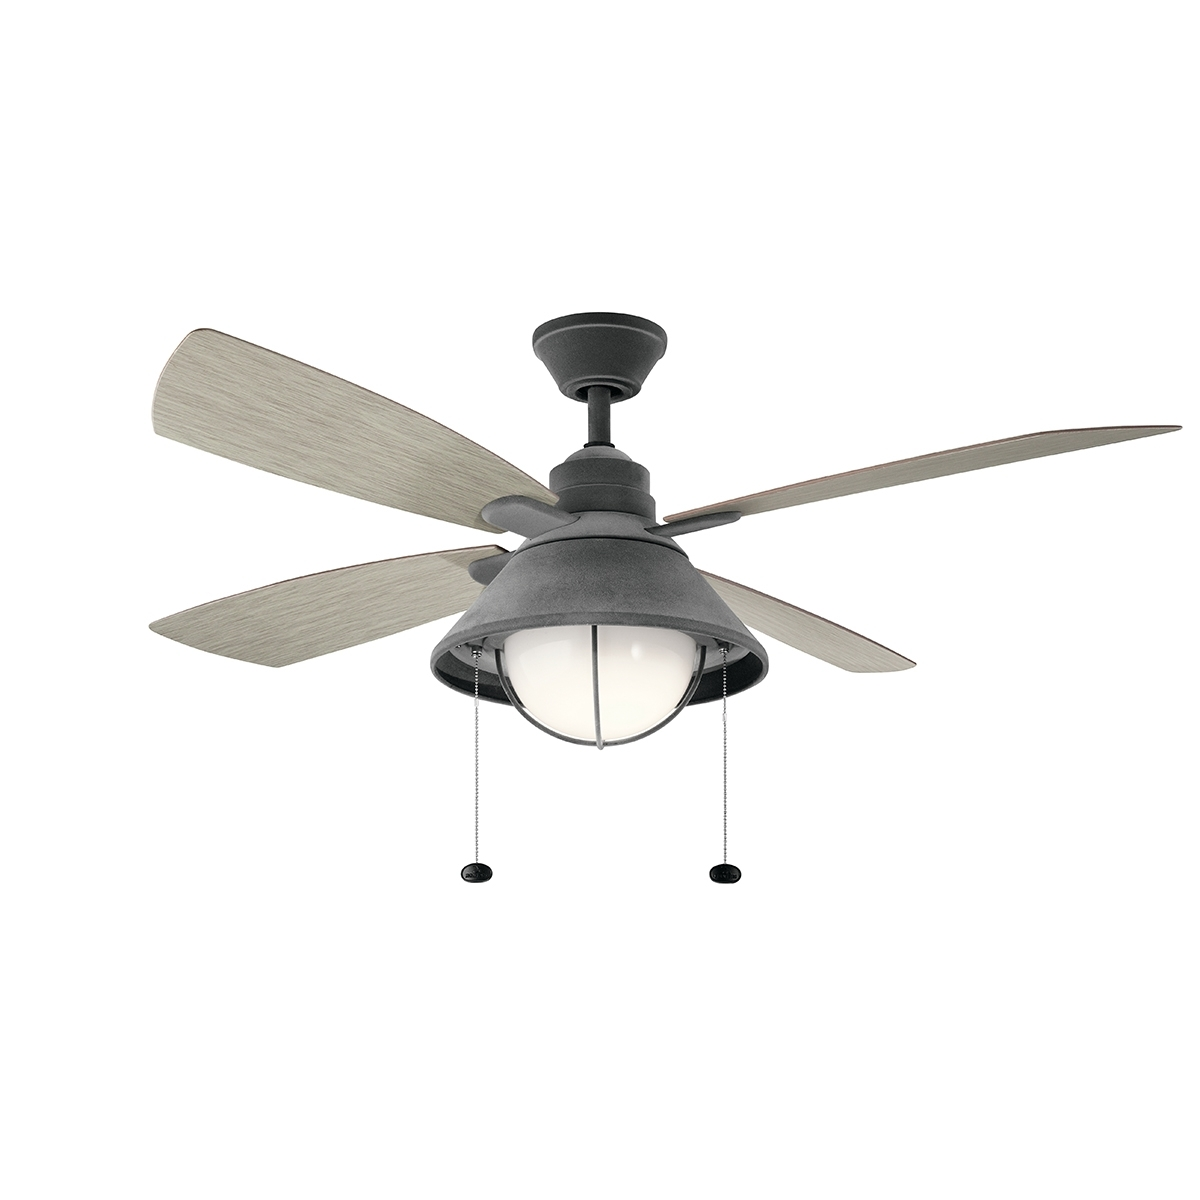 310181Wzc With Regard To Kichler Outdoor Ceiling Fans With Lights (Gallery 13 of 20)